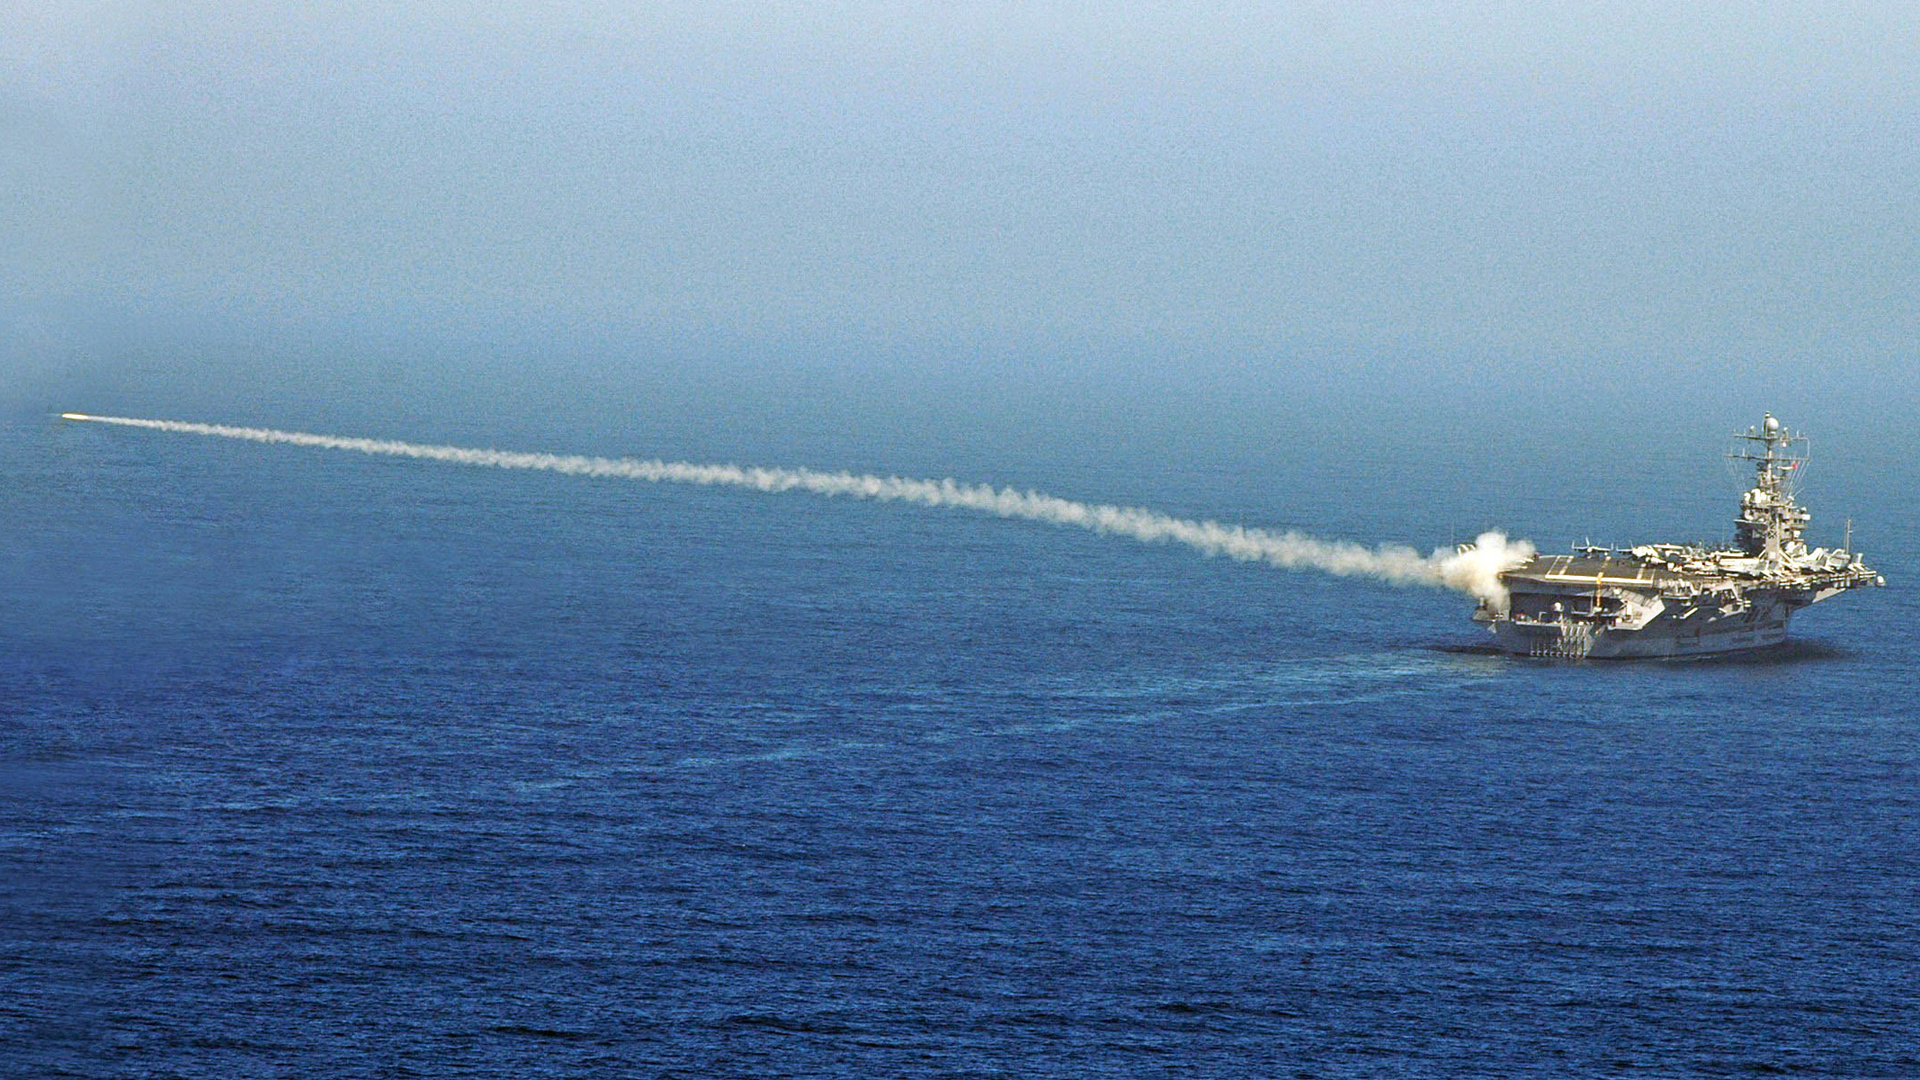 In this handout photo provided by the U.S. Navy, a RIM-7P NATO Sea Sparrow Missile launches from Nimitz-class aircraft carrier USS Abraham Lincoln (CVN 72) during a stream raid shoot exercise on August 13, 2007 At Sea. (Credit: M. Jeremie Yoder/U.S. Navy/Getty Images)